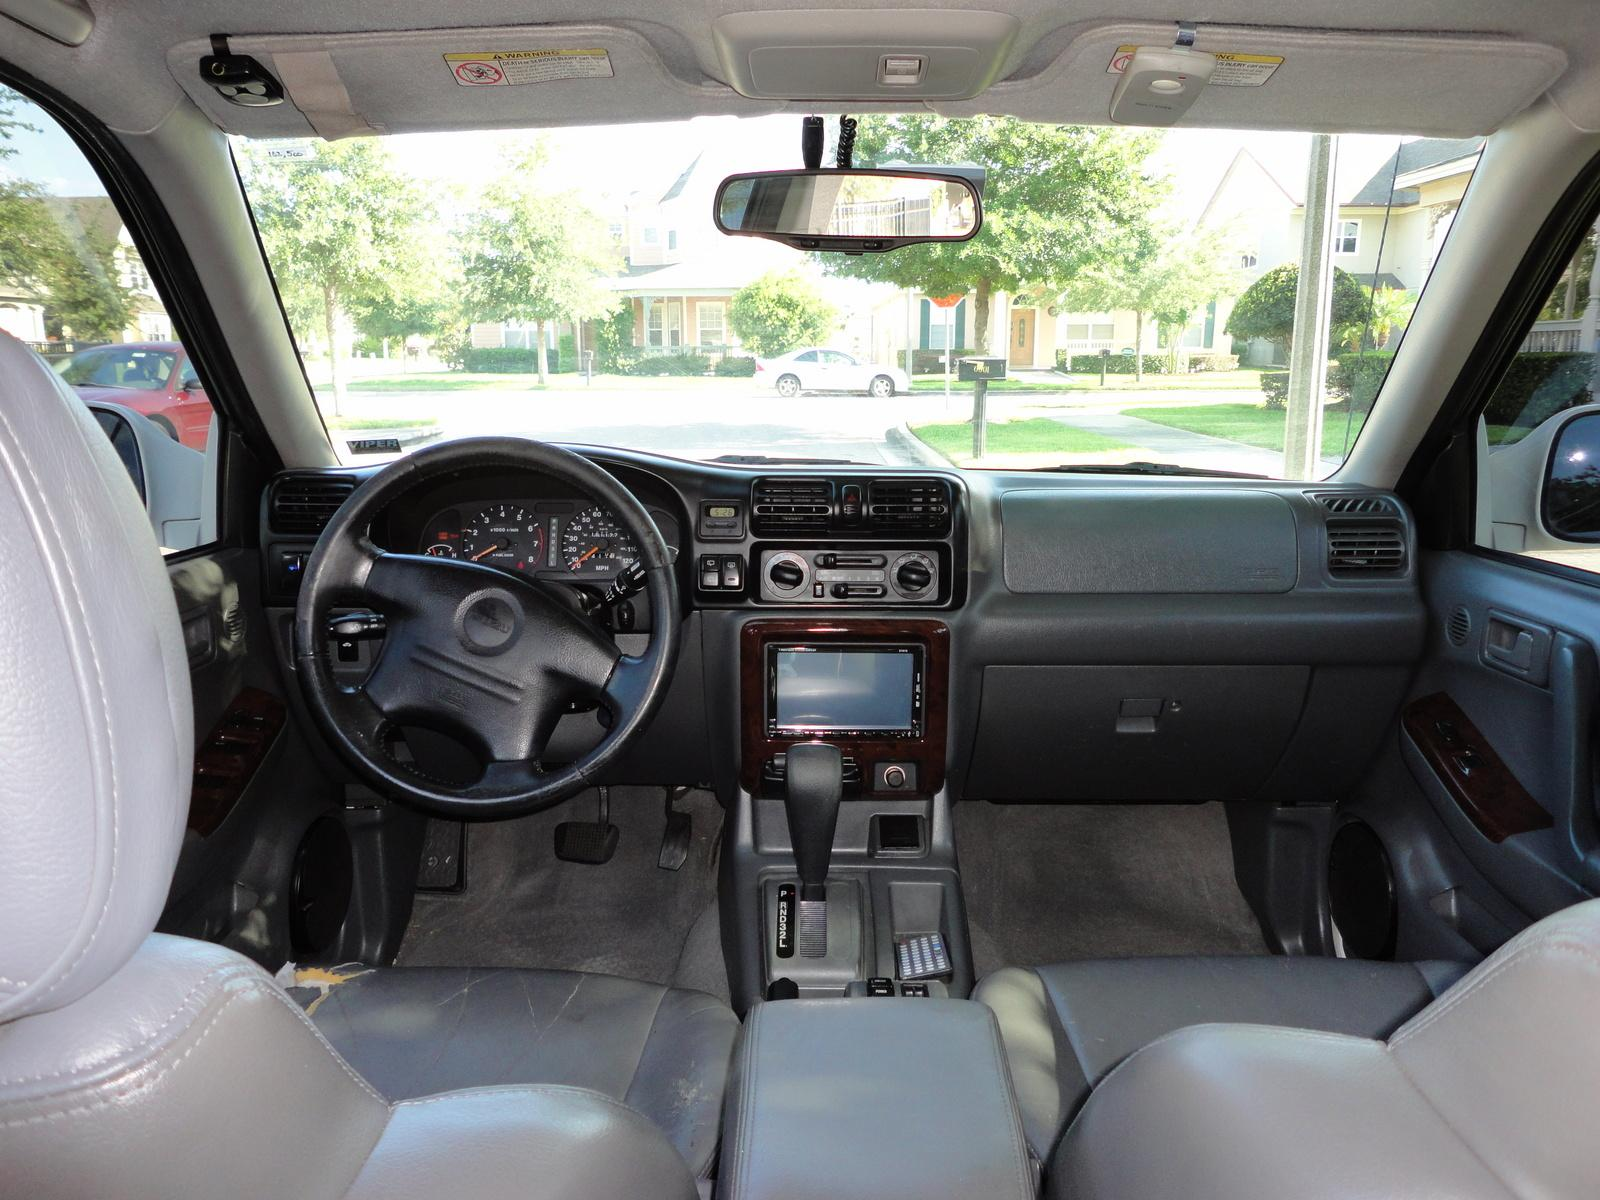 1998 isuzu rodeo information and photos zombiedrive